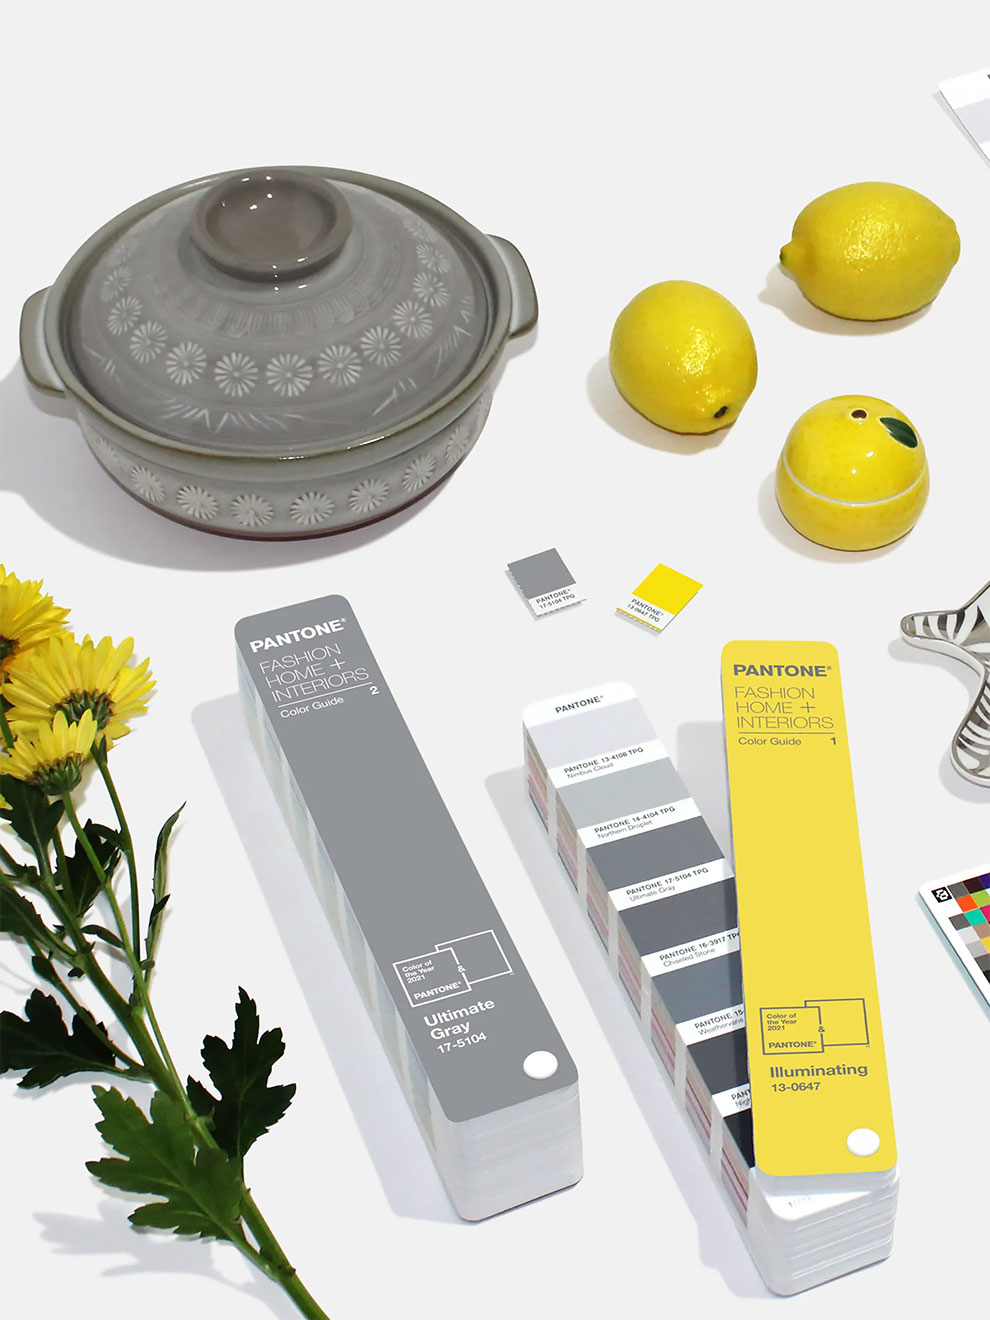 Pantone Unveils Its 2021 Colors of the Year: Pandemic Gray and Bright Yellow